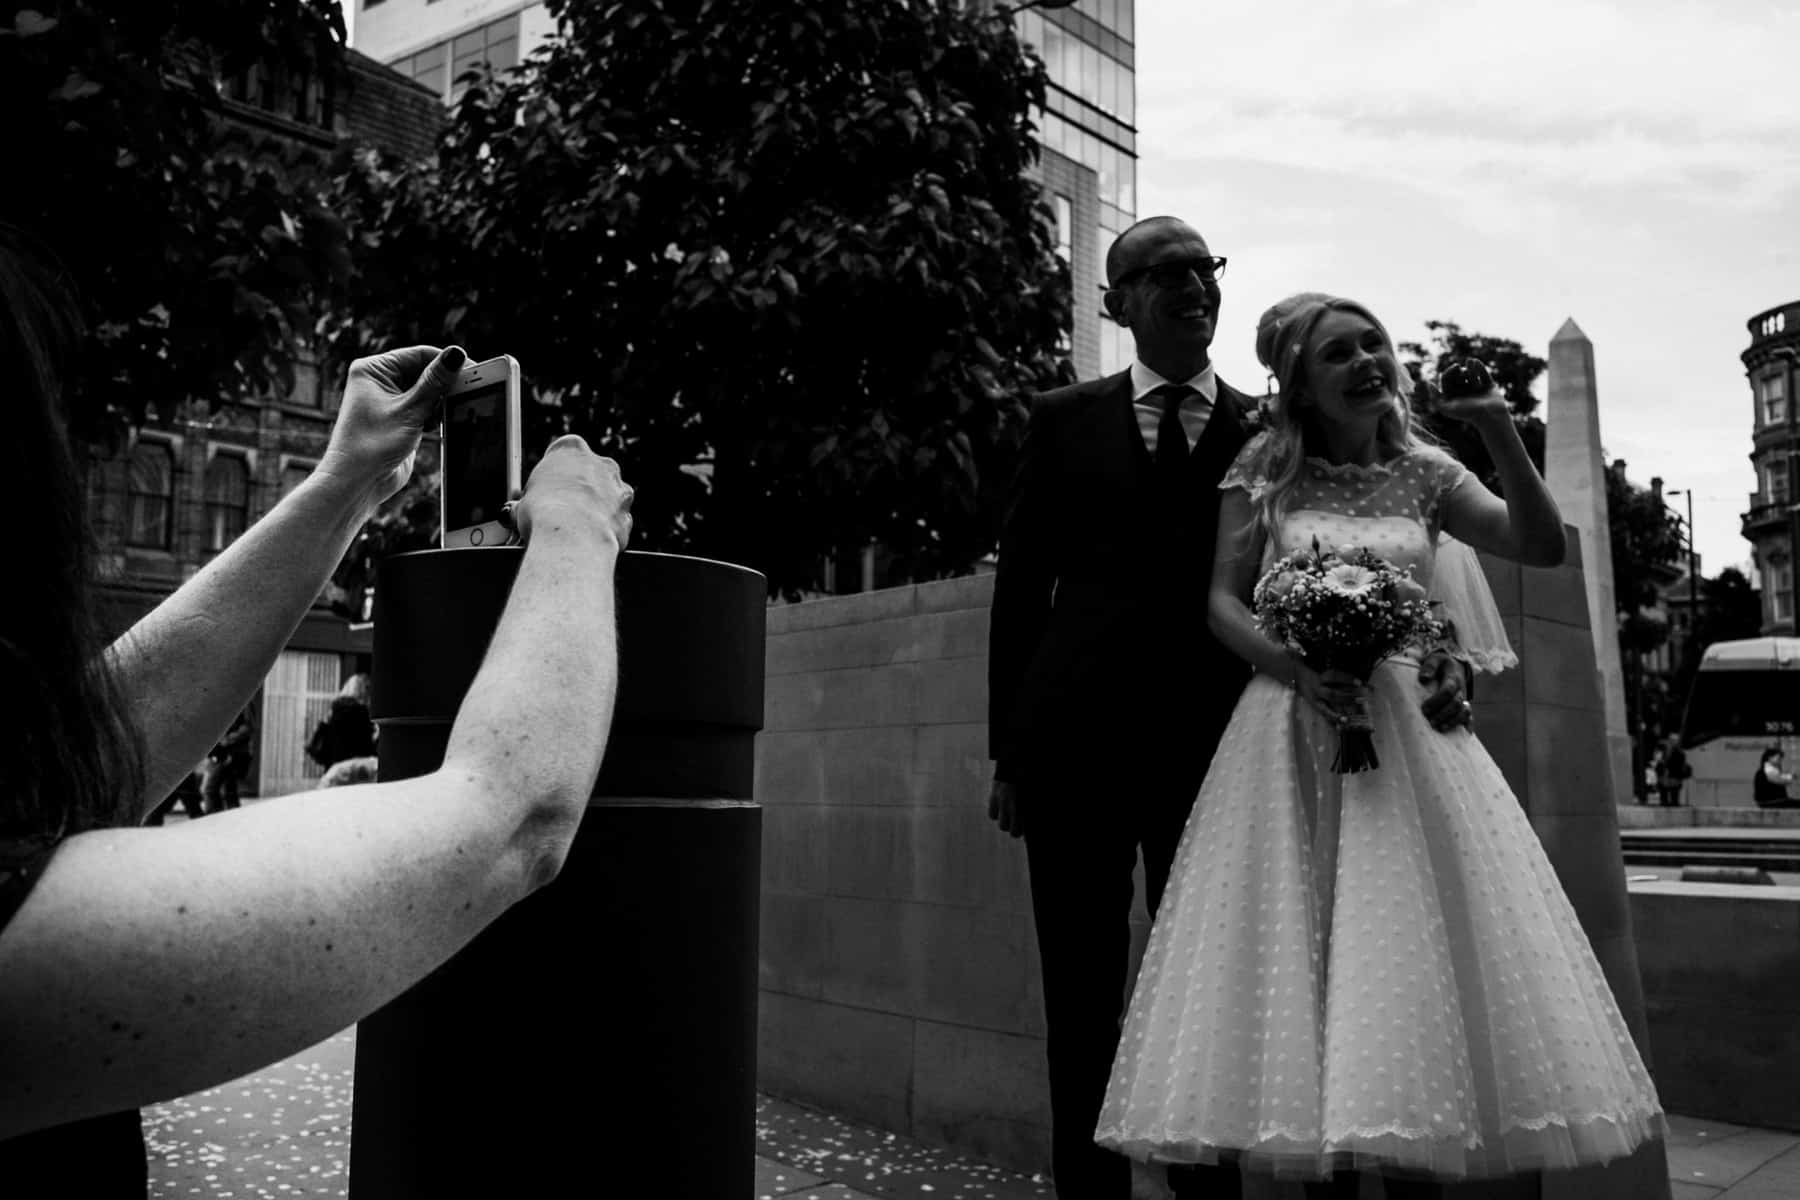 public taking photographs of wedding couple